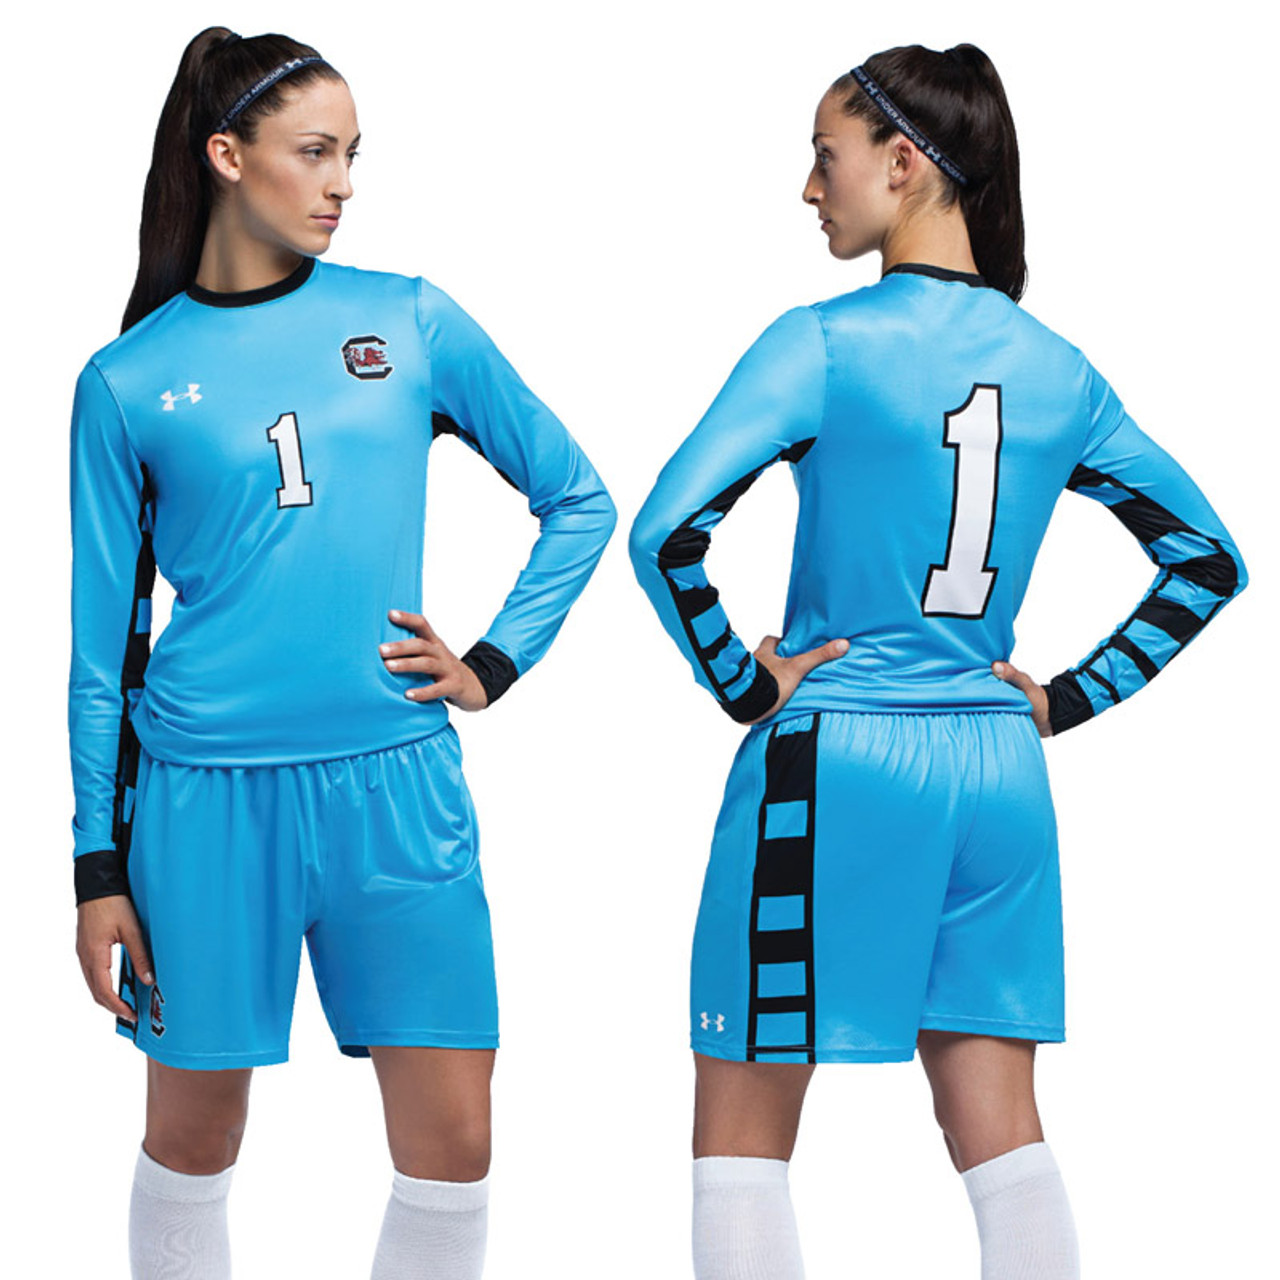 buy online 94f95 30435 Under Armour Women's Armourfuse Long Sleeve Soccer Jersey - Control